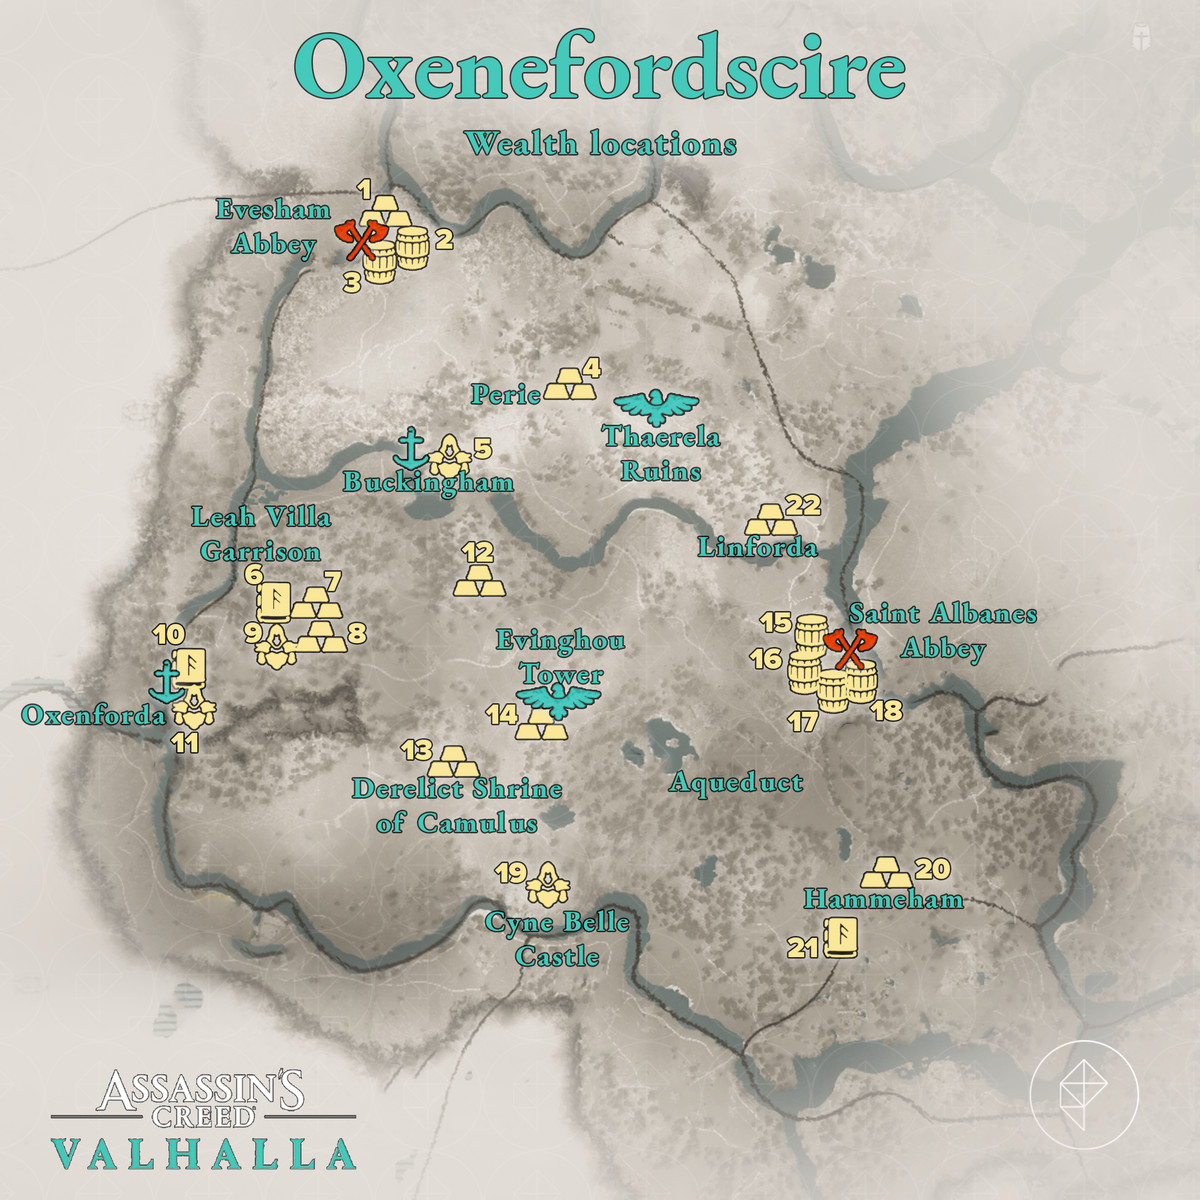 Oxenefordscire Wealth locations map